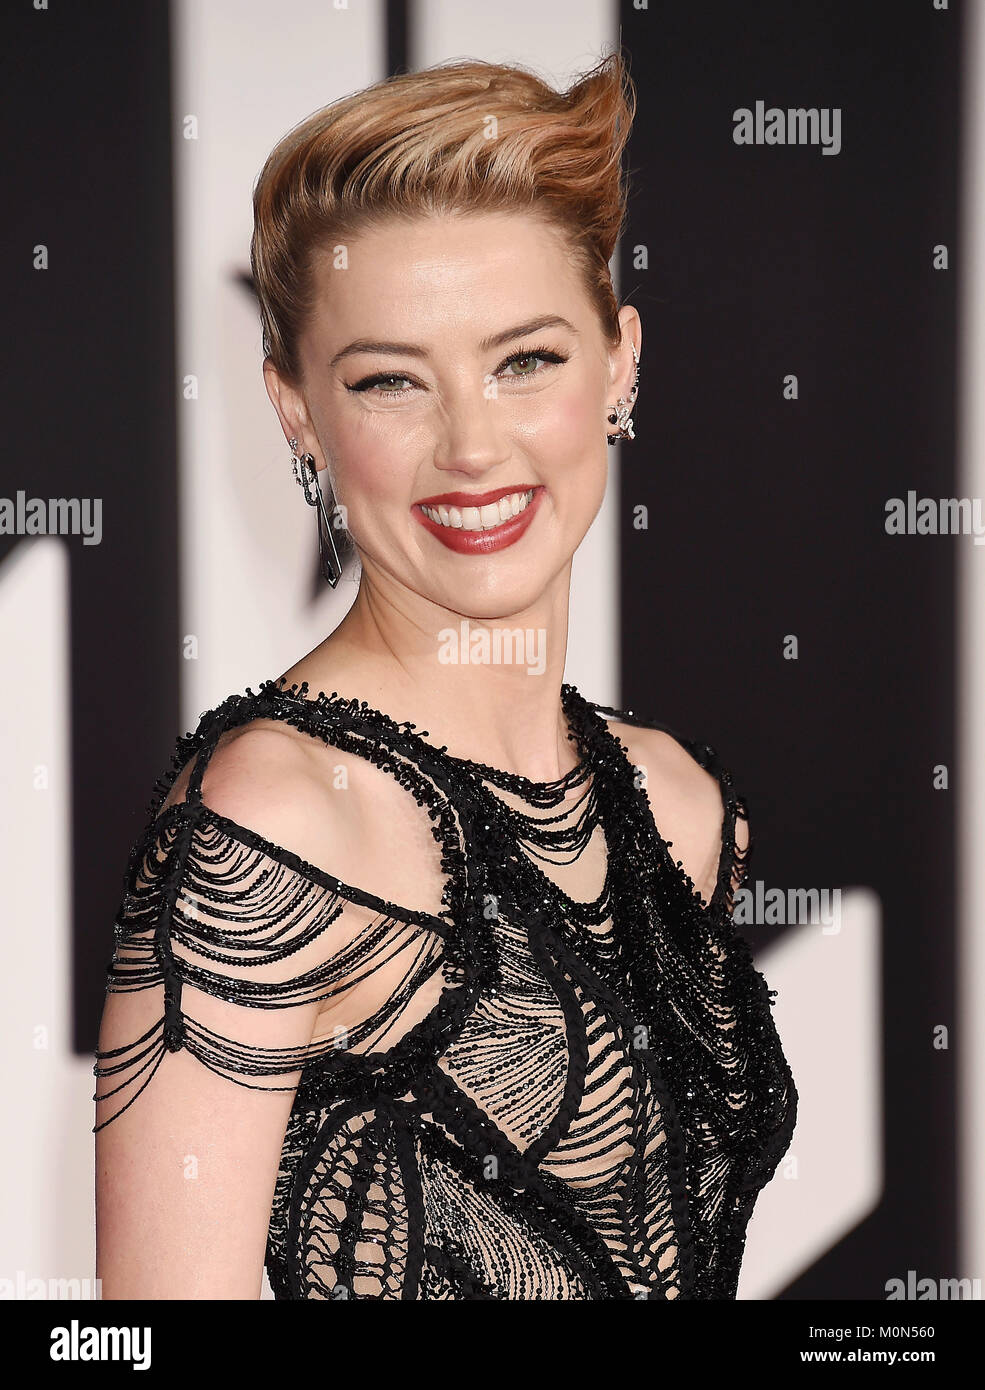 AMBER HEARD US film actress  arrives at the Premiere Of Warner Bros. Pictures' 'Justice League' at the - Stock Image